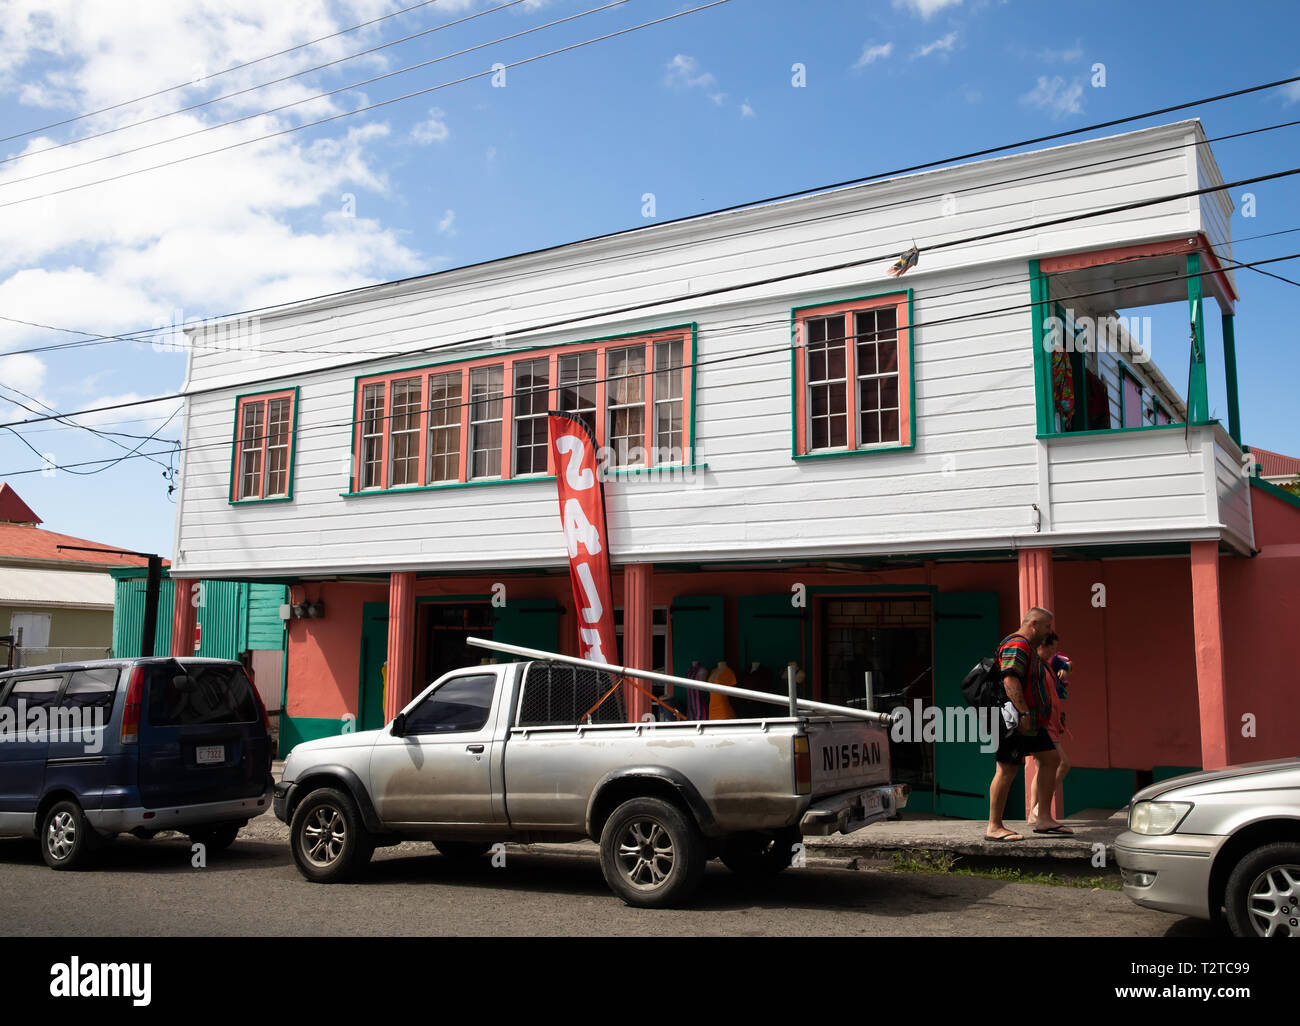 Colourful building in Saint John's, Capital of Antigua and Barbuda Stock Photo